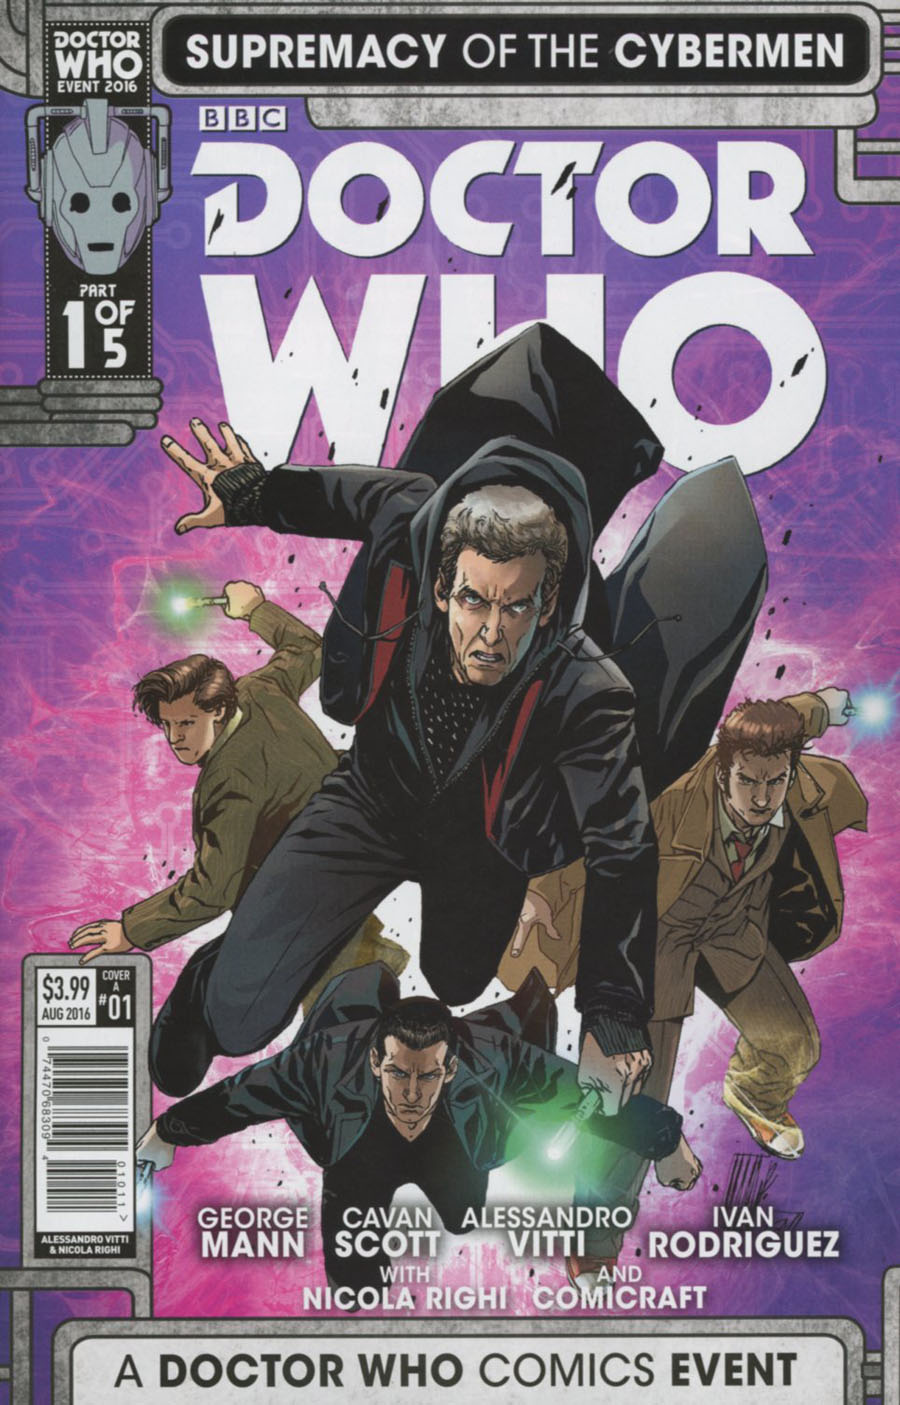 Doctor Who Event 2016 Supremacy Of The Cybermen #1 Cover A Regular Alessandro Vitti Cover